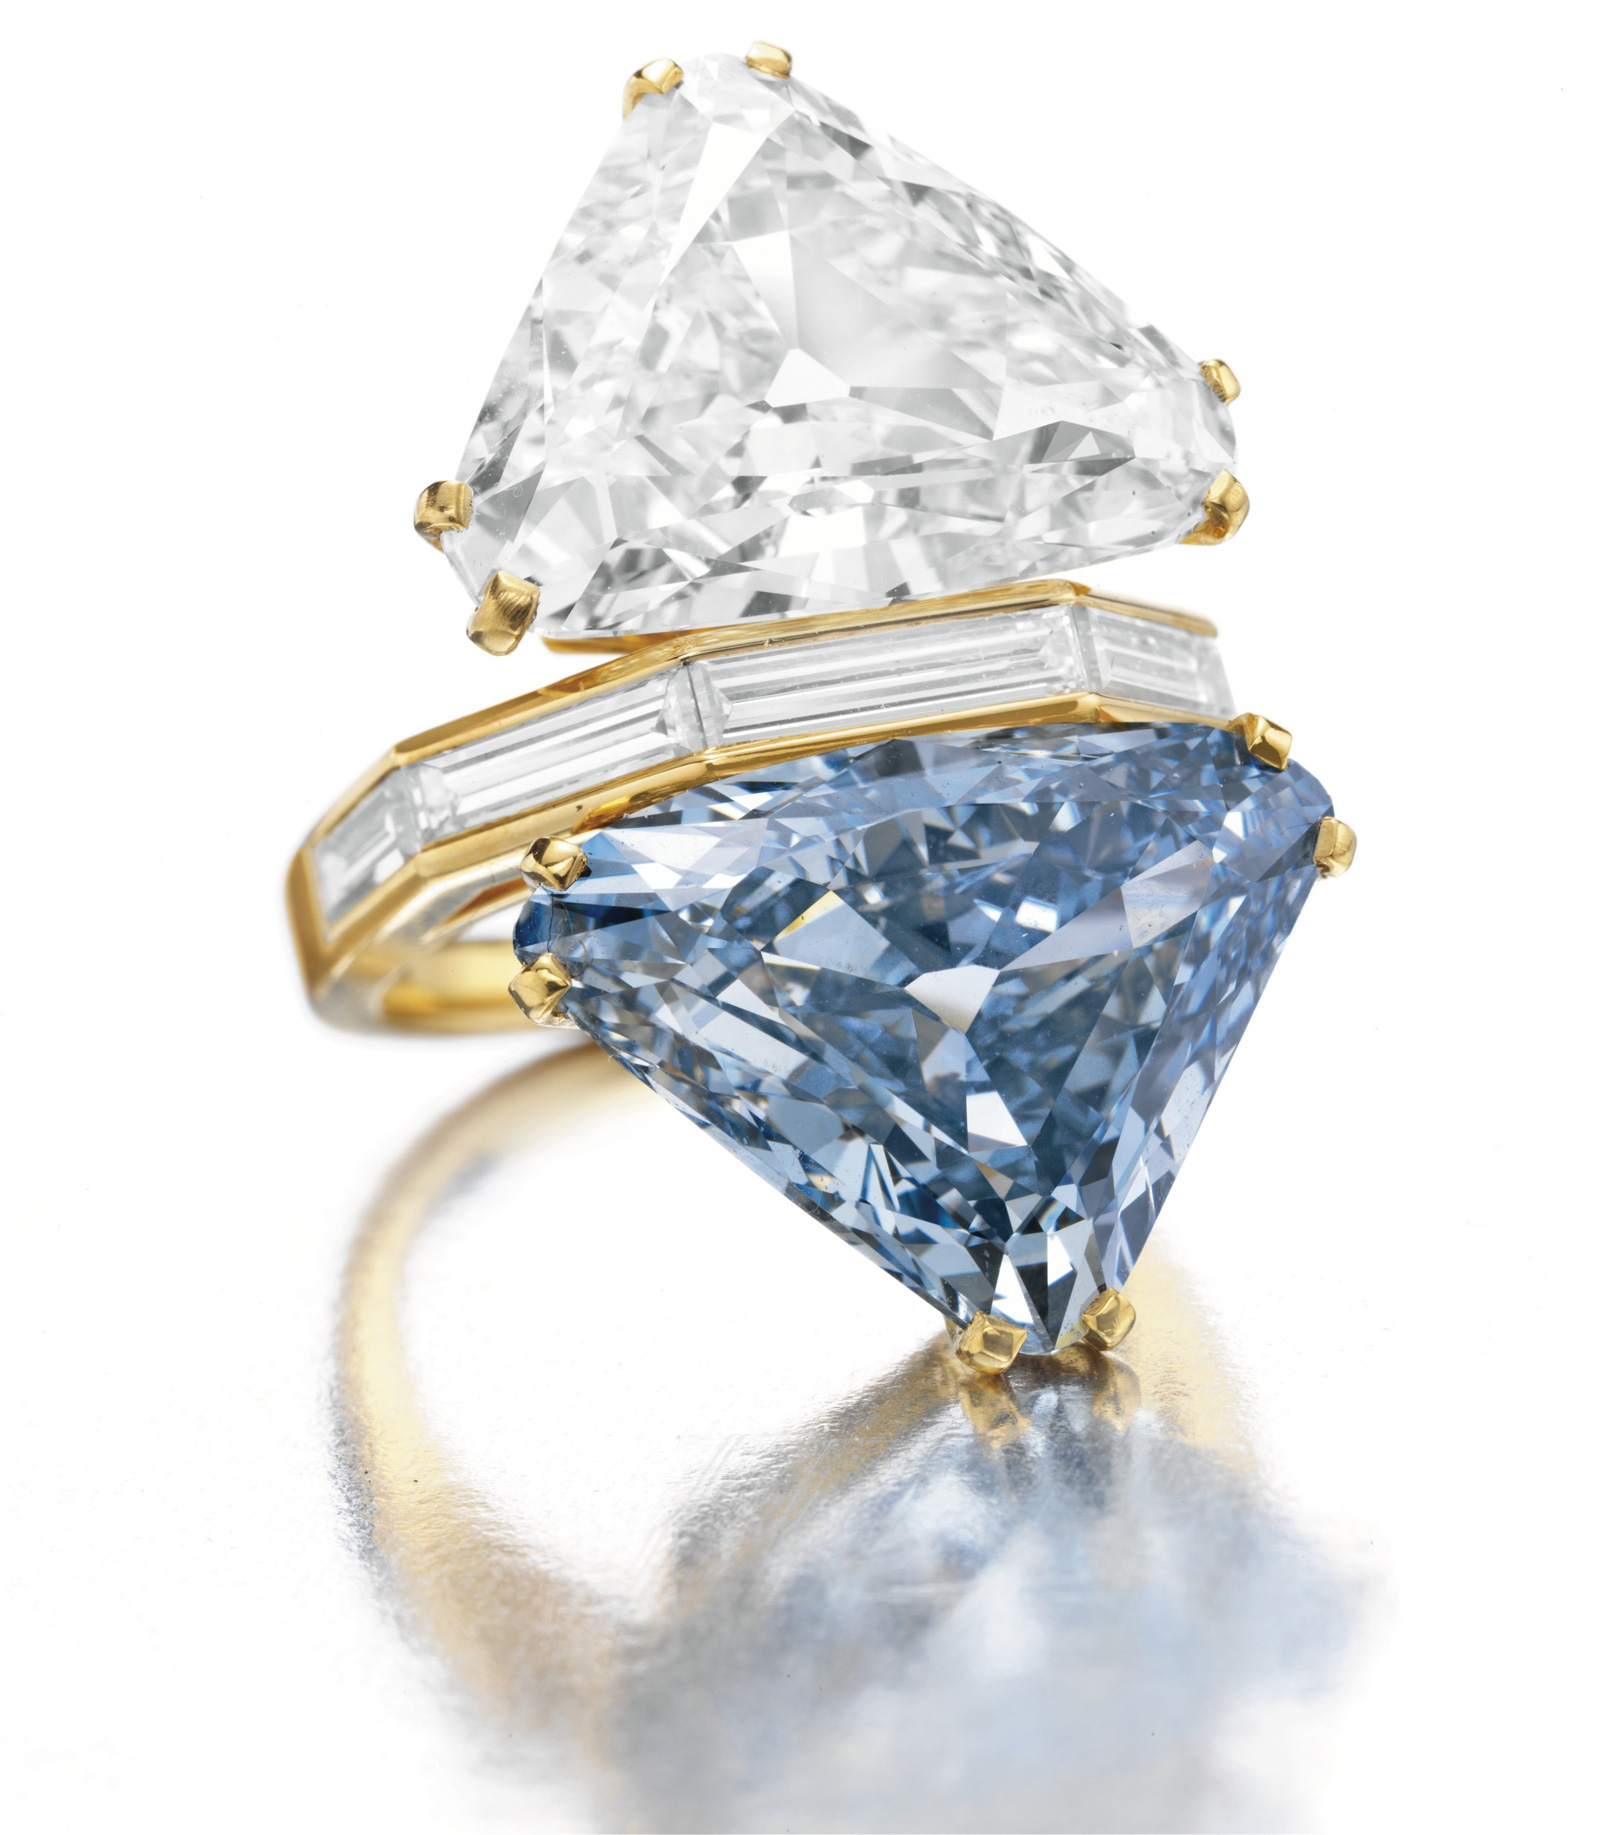 The BVLGARI Blue Diamond - Two-stone Diamond Ring